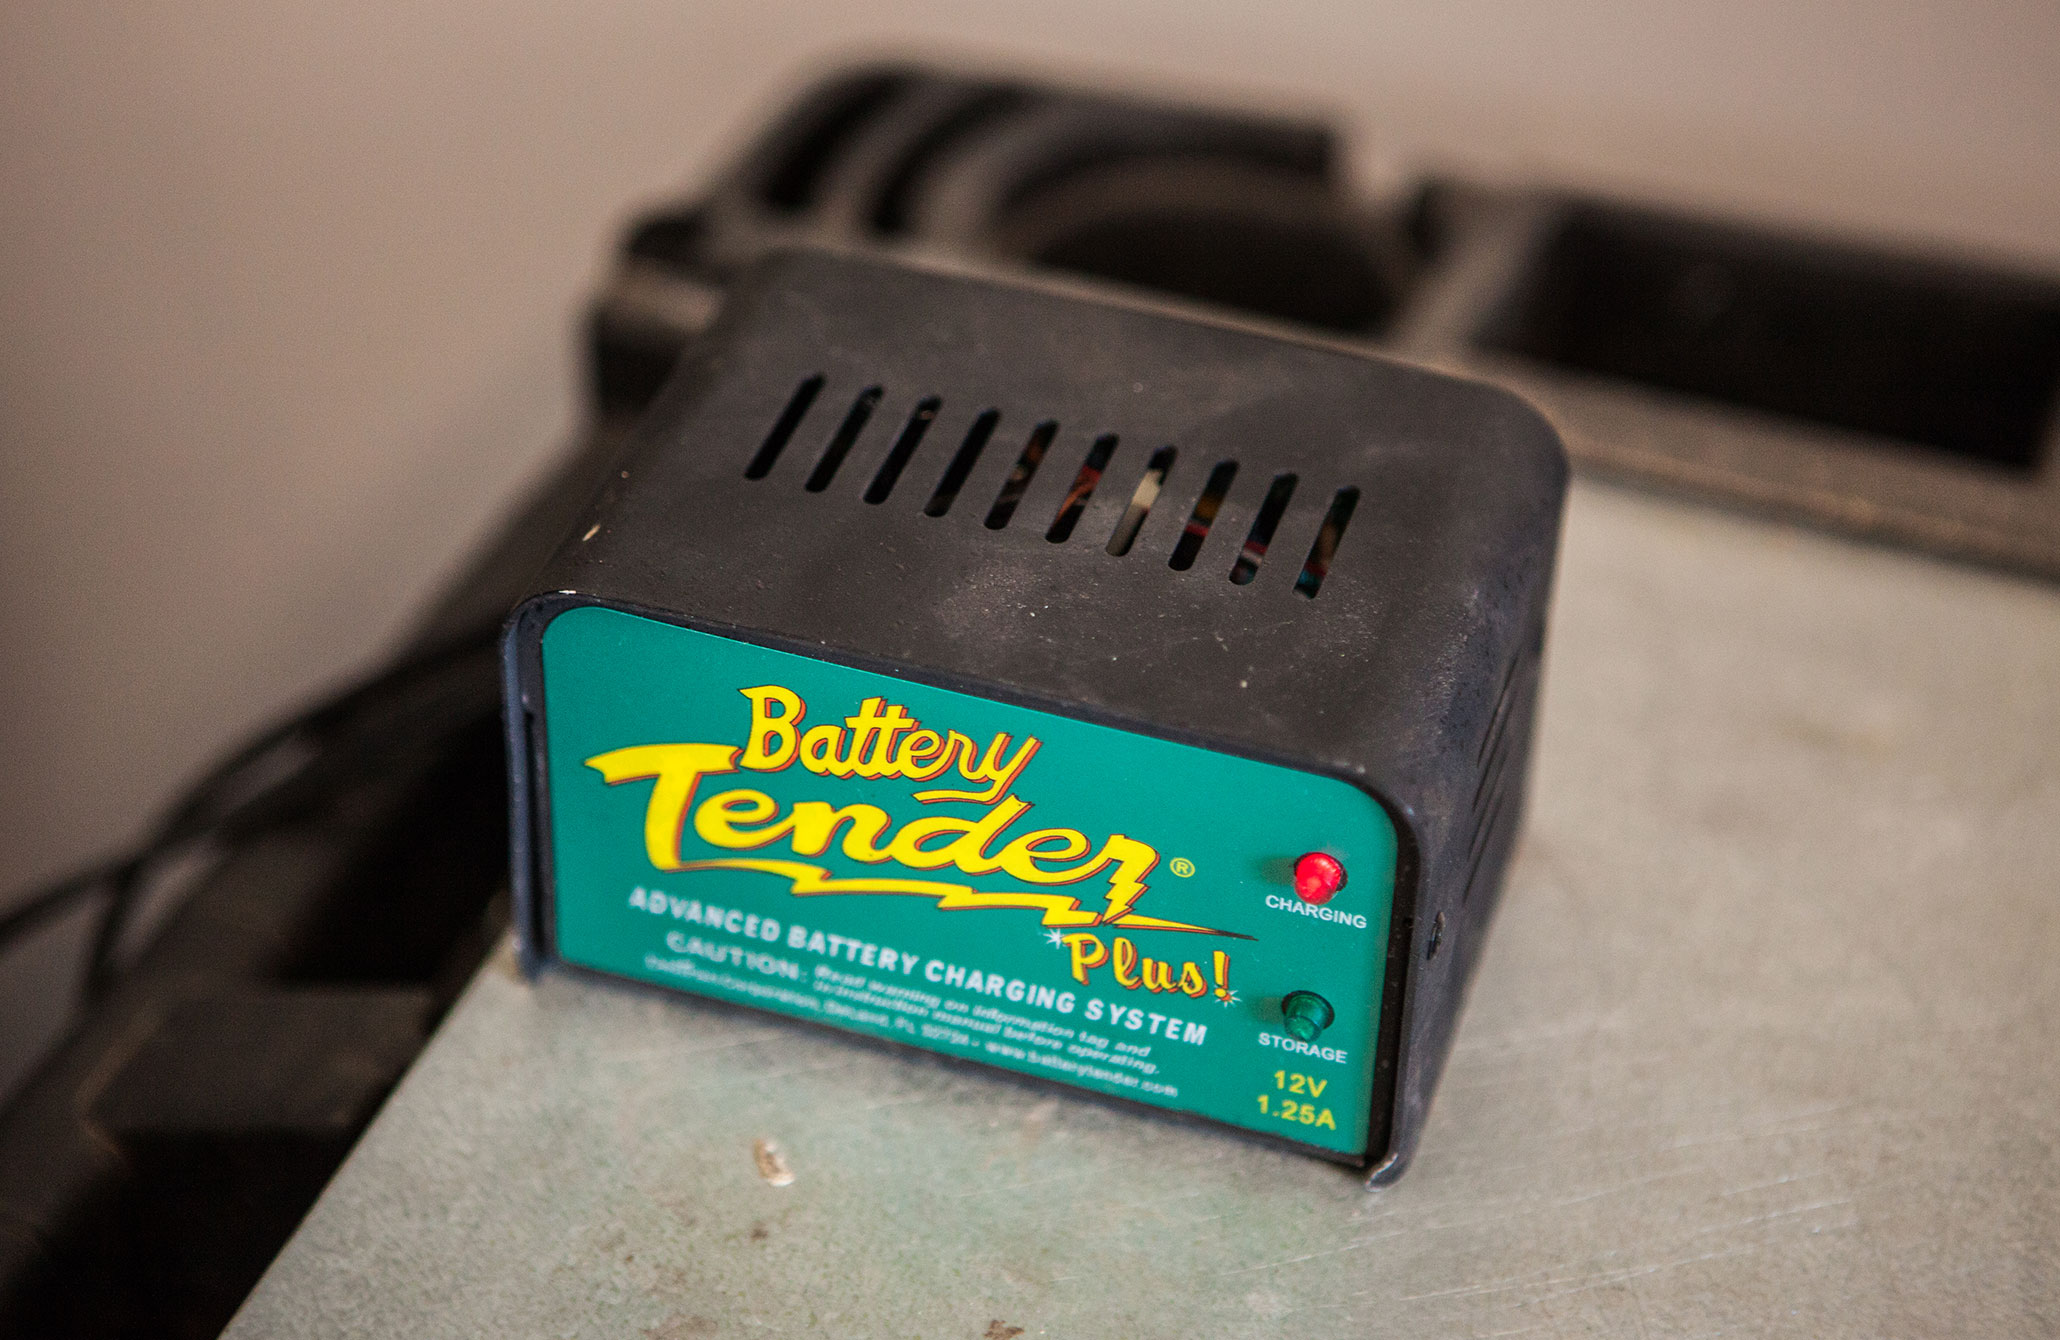 Vehicles parked for extended periods are prone to discharge, particularly late-model vehicles with many electrical accessories. If your 4x4 sits for a long time, consider adding a Battery Tender to keep the battery full charged for the next time you want to hit the trail.